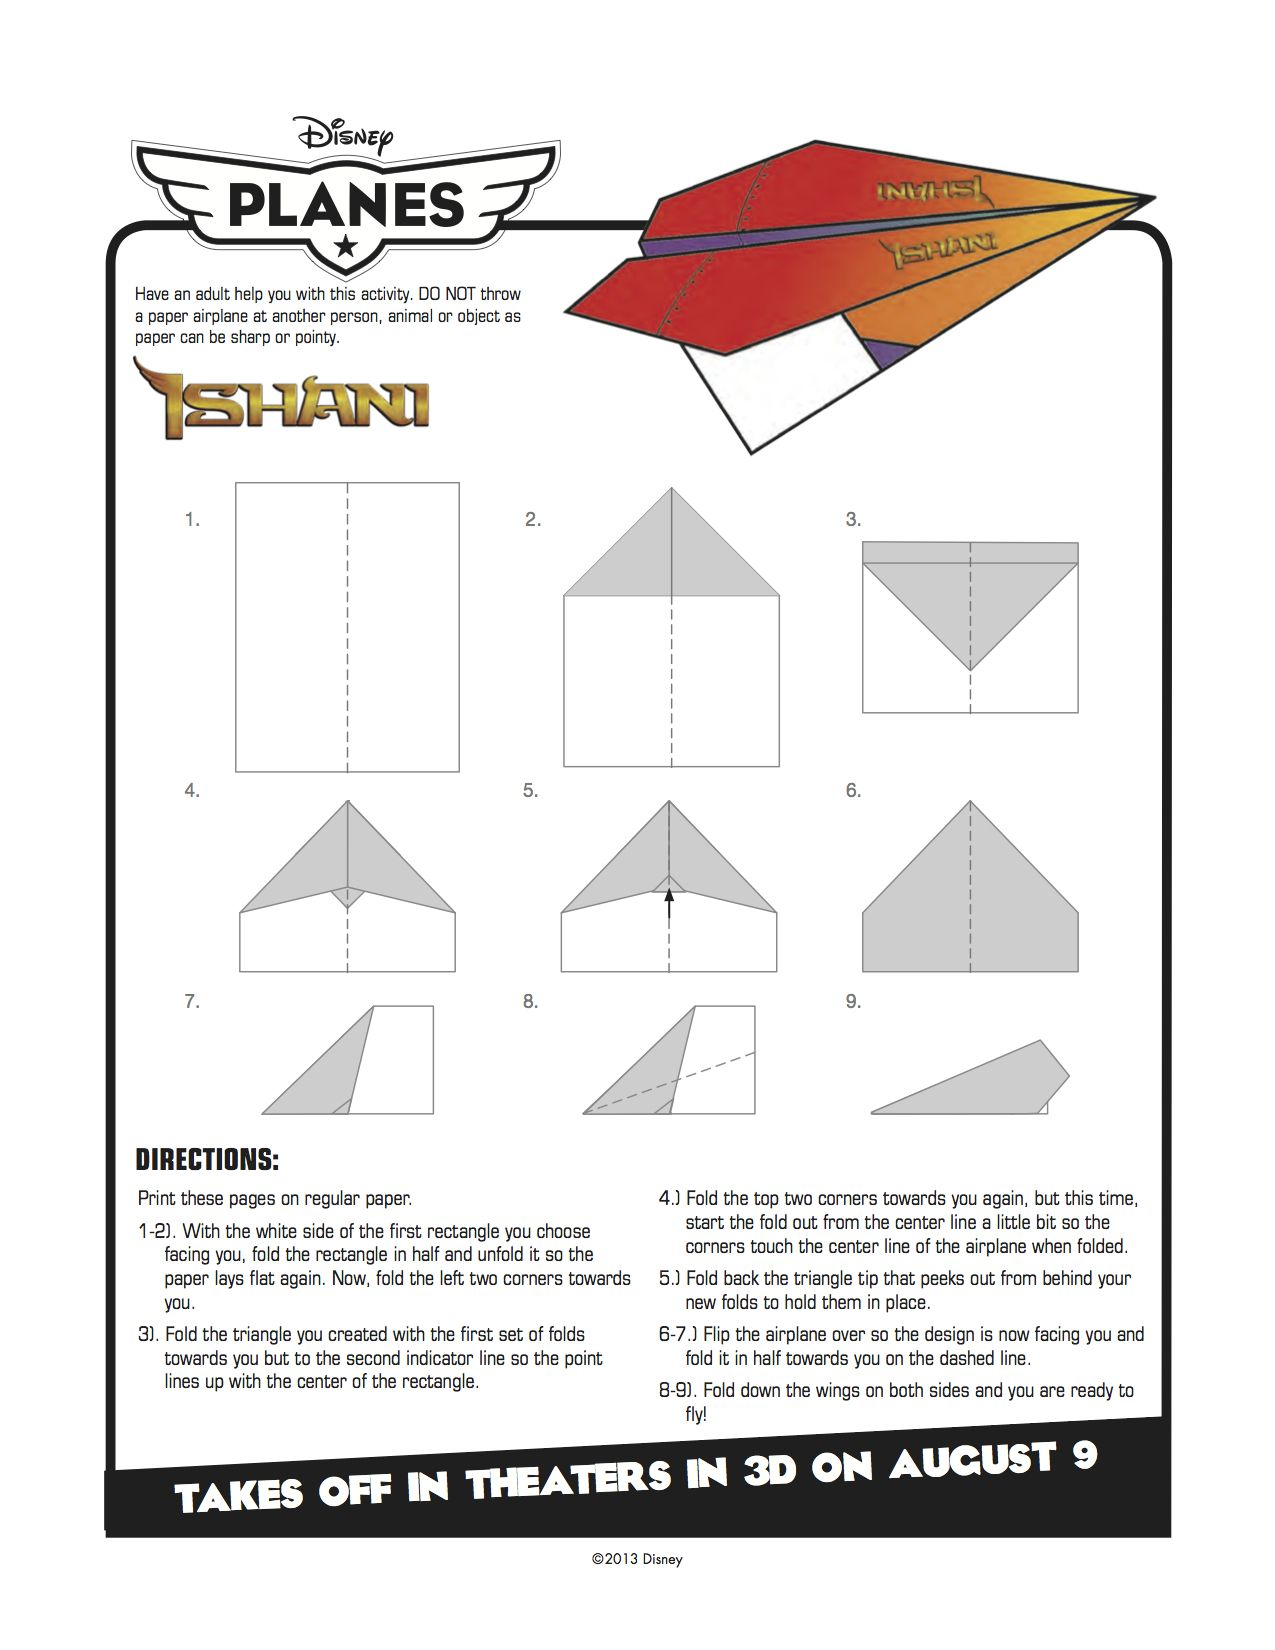 photo about Printable Paper Airplane Instructions named Disney Planes Printable Ishani Paper Plane Craft Disney